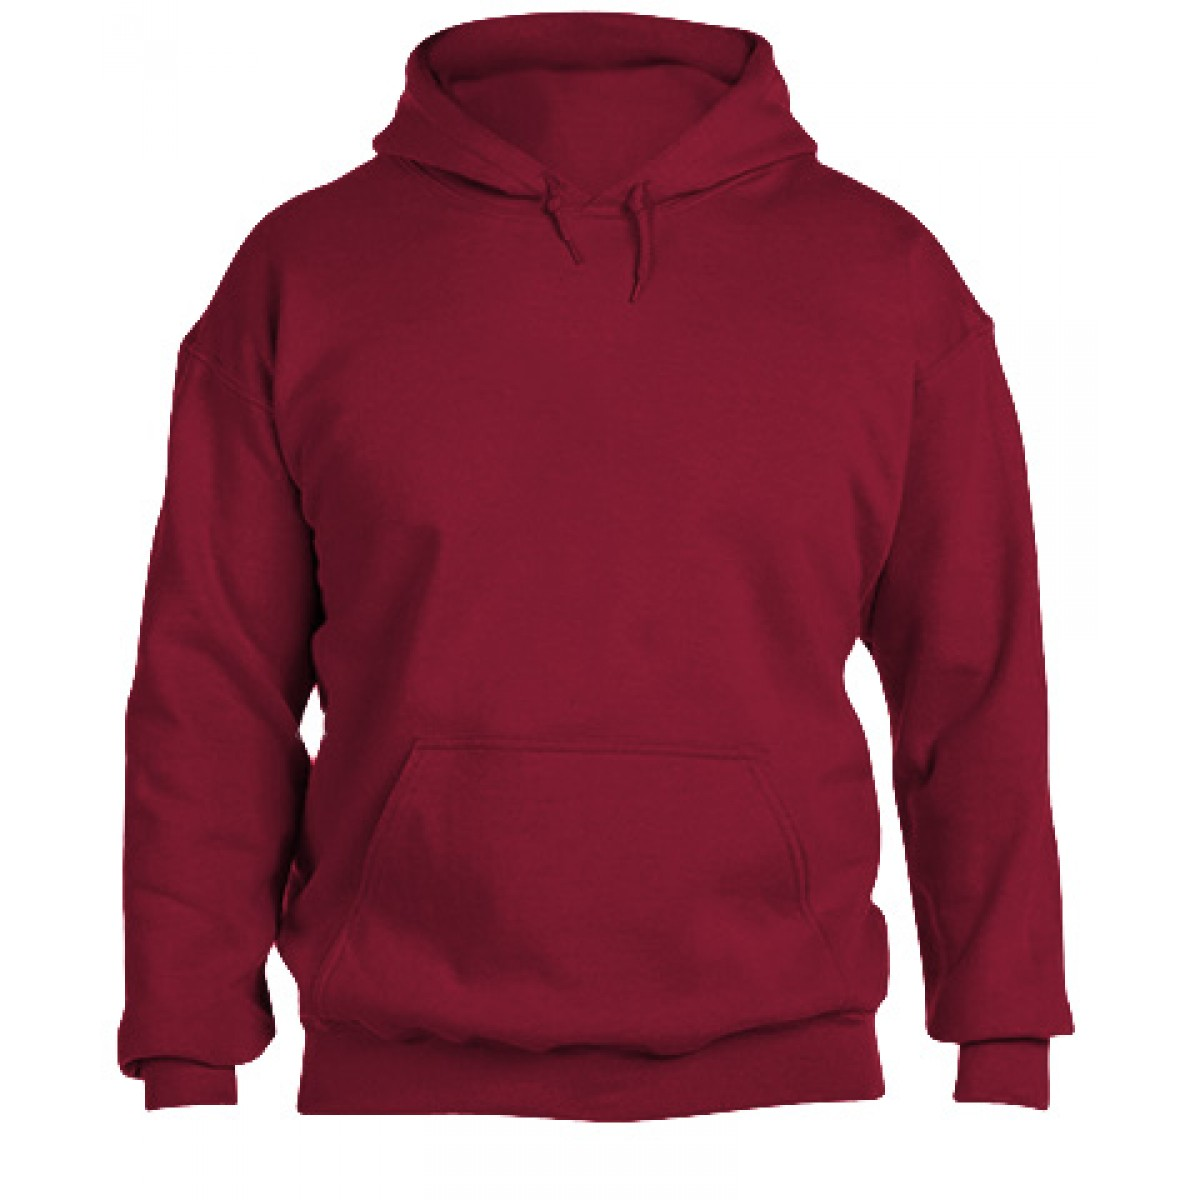 Hooded Sweatshirt 50/50 Heavy Blend -Cardinal Red-2XL